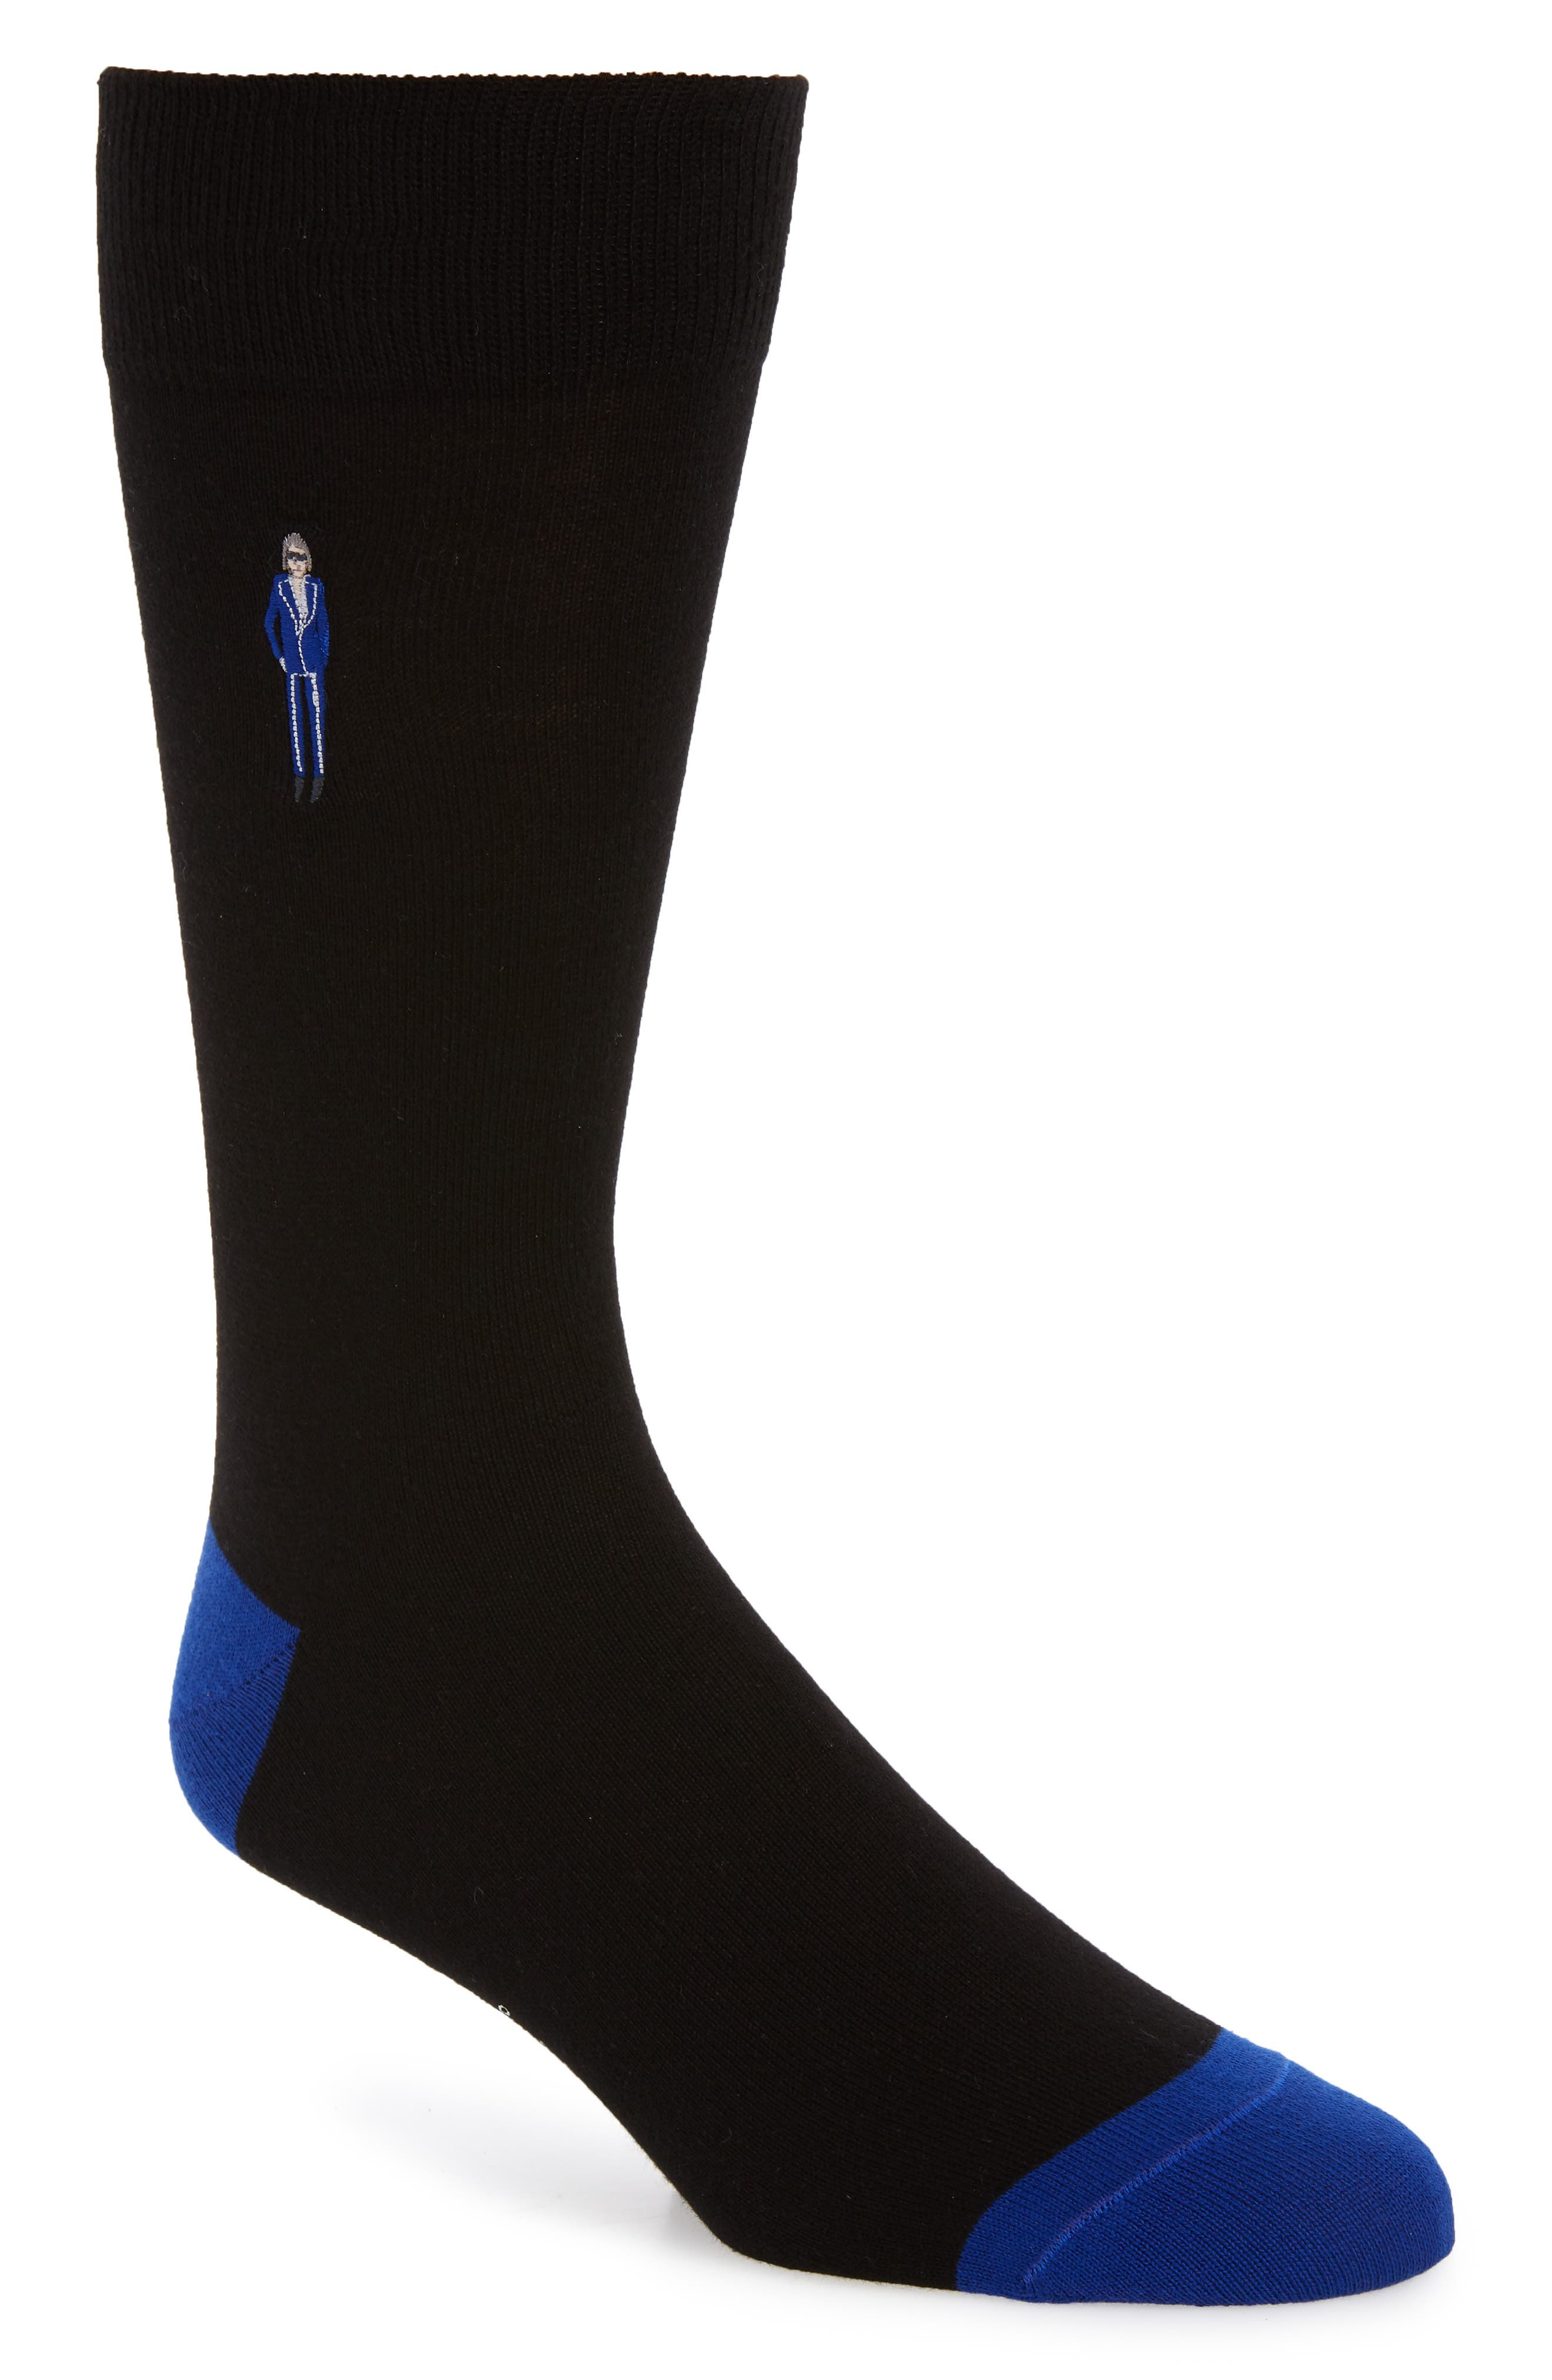 PAUL SMITH Embroidered People Socks, Main, color, BLACK